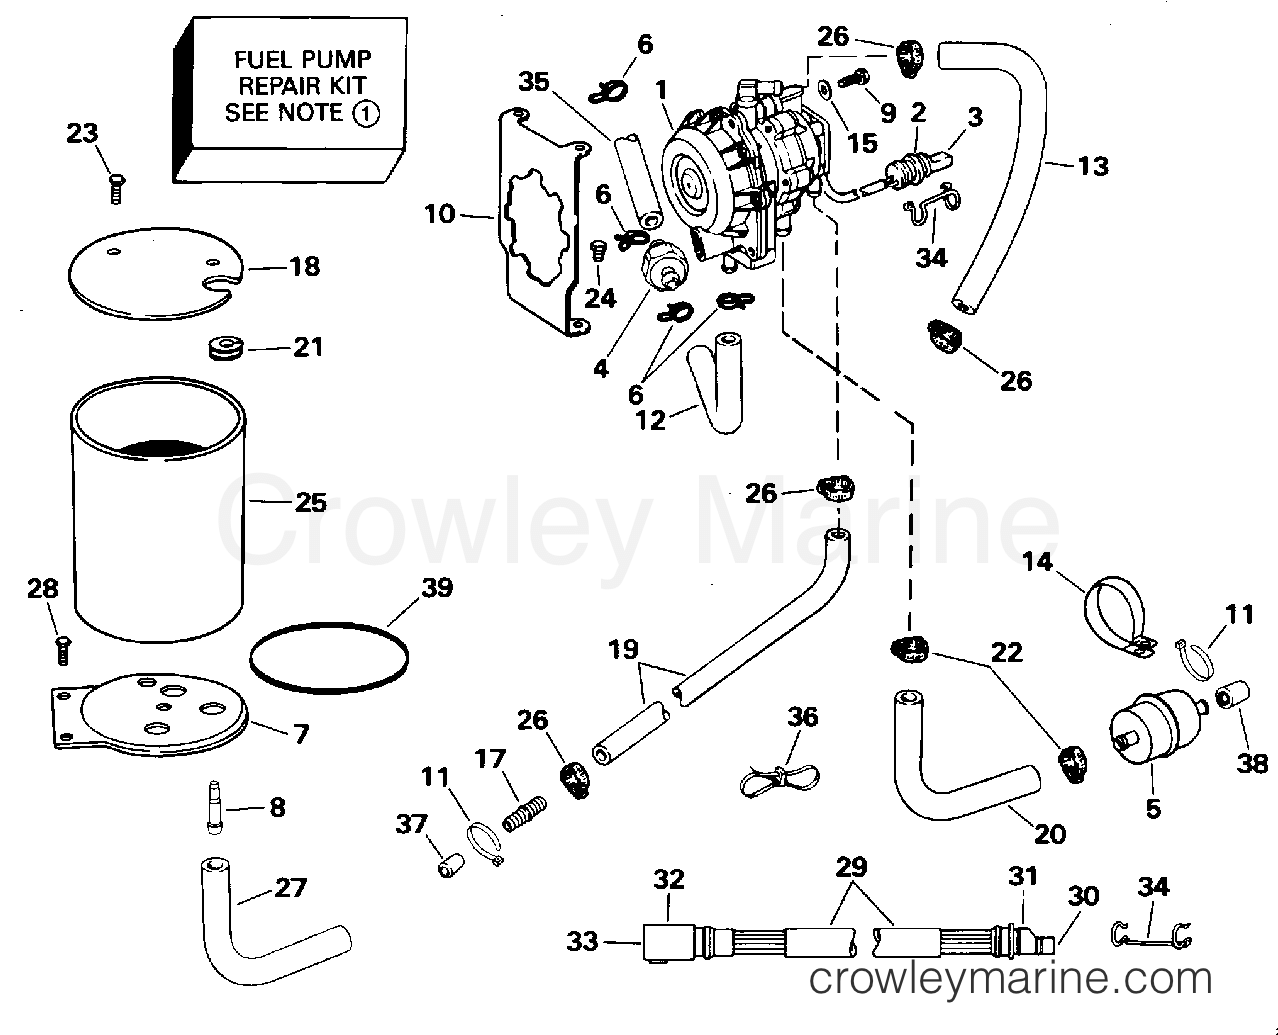 2006 rmz 250 wiring diagram with Mercury 115 Outboard Motor Manual on Mercury 115 Outboard Motor Manual as well Suzuki Dr650 Motorcycle  plete together with Kfx 400 Timing Chain Diagram moreover Suzuki Rm 250 Engine Diagram together with Keihin Carburetor Fcr Mx Diagram.